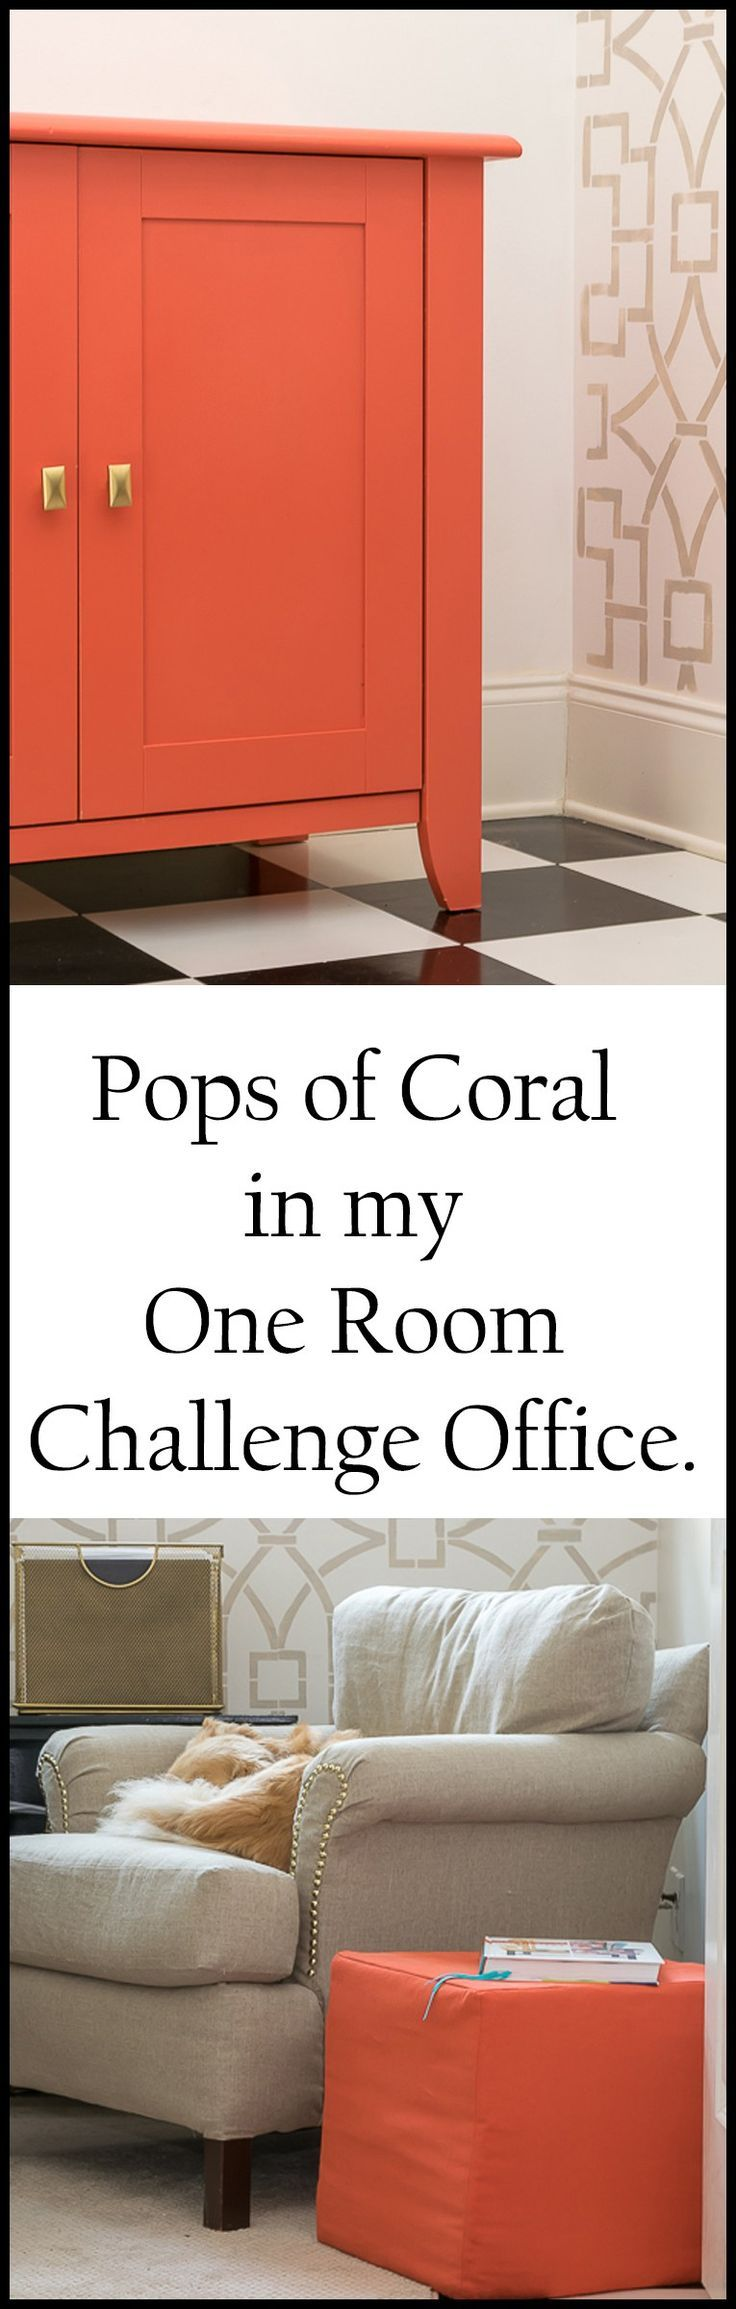 I've added a coral chest and ottoman to my office. See the progress I made during Week 5 of the One Room Challenge to update the room's decor.